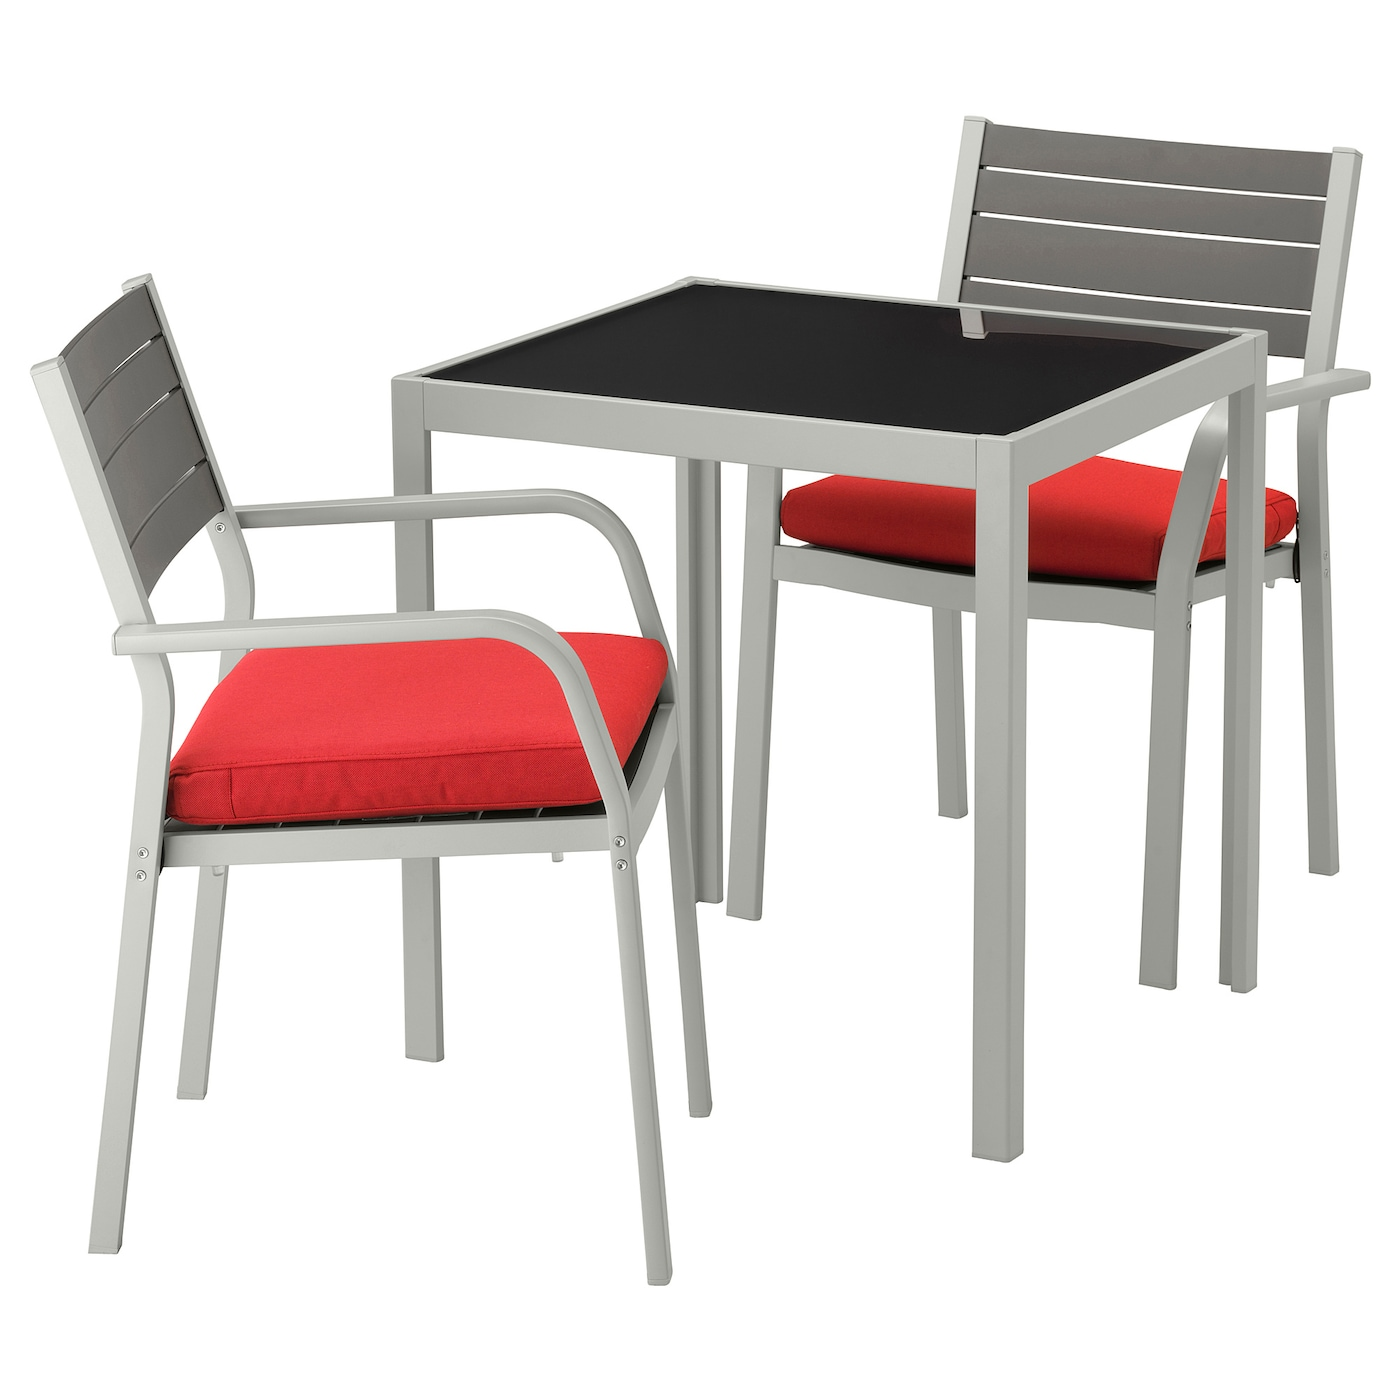 IKEA SJÄLLAND table+2 chairs w armrests, outdoor Easy to keep clean – just wipe with a damp cloth.